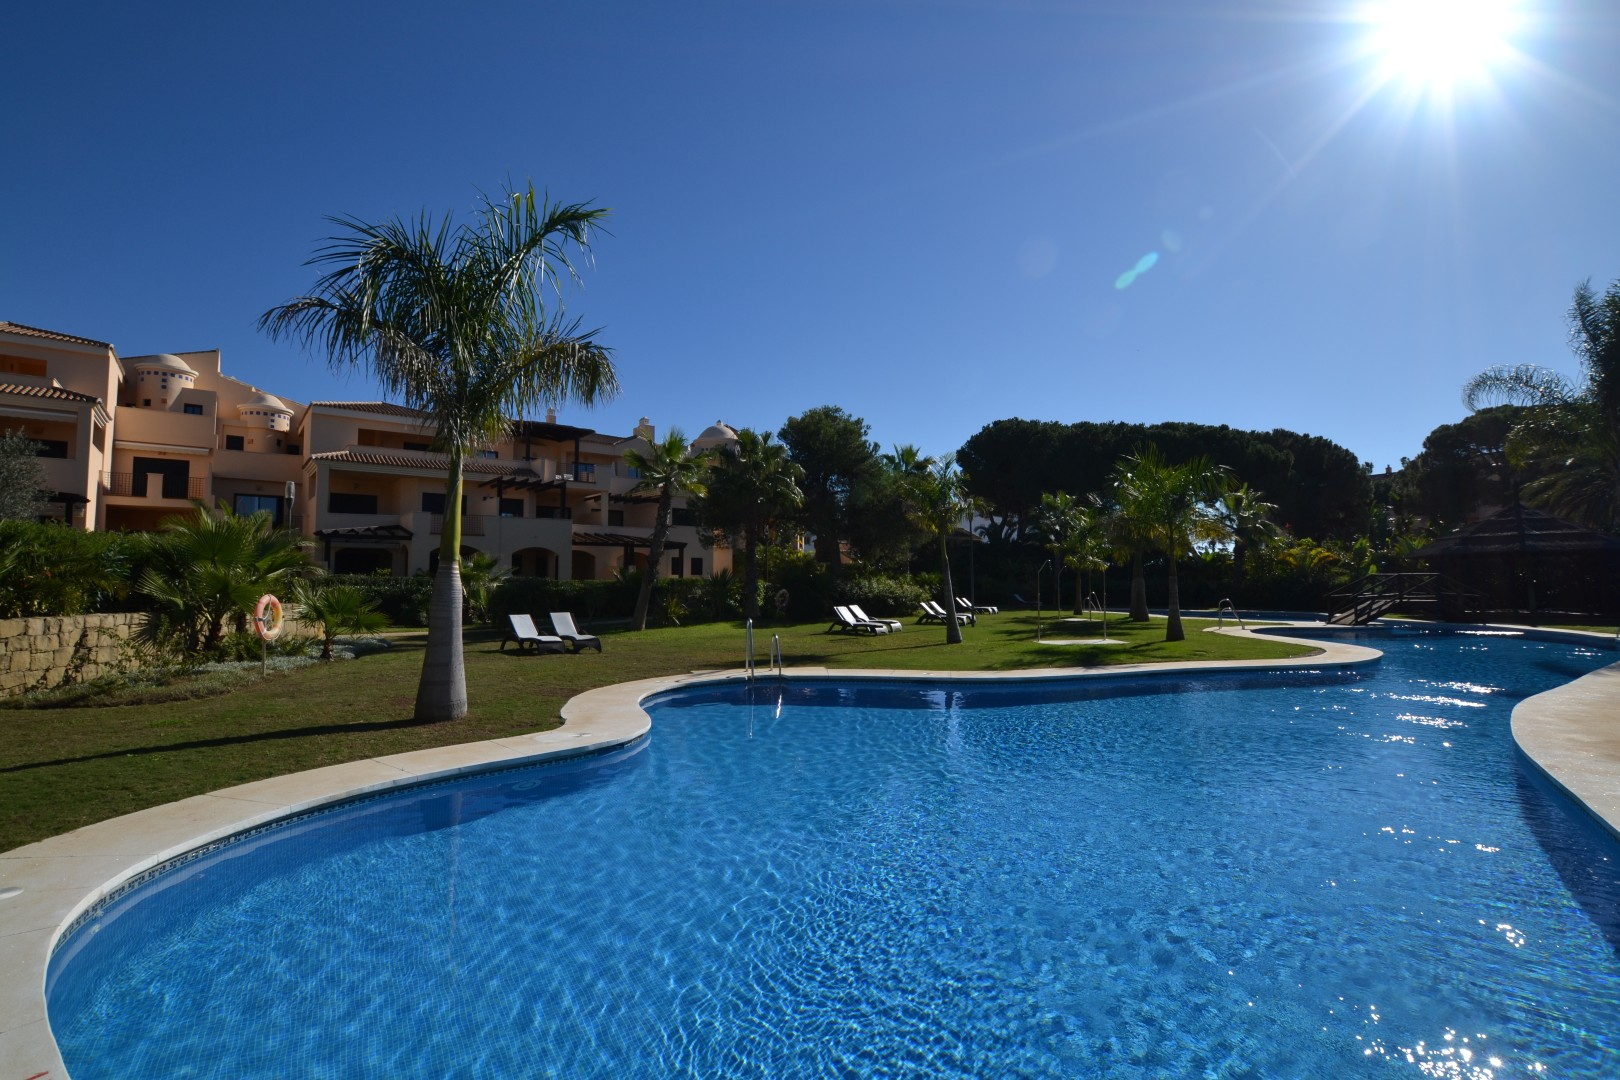 Holiday apartment in Marbella – 4 bedrooms